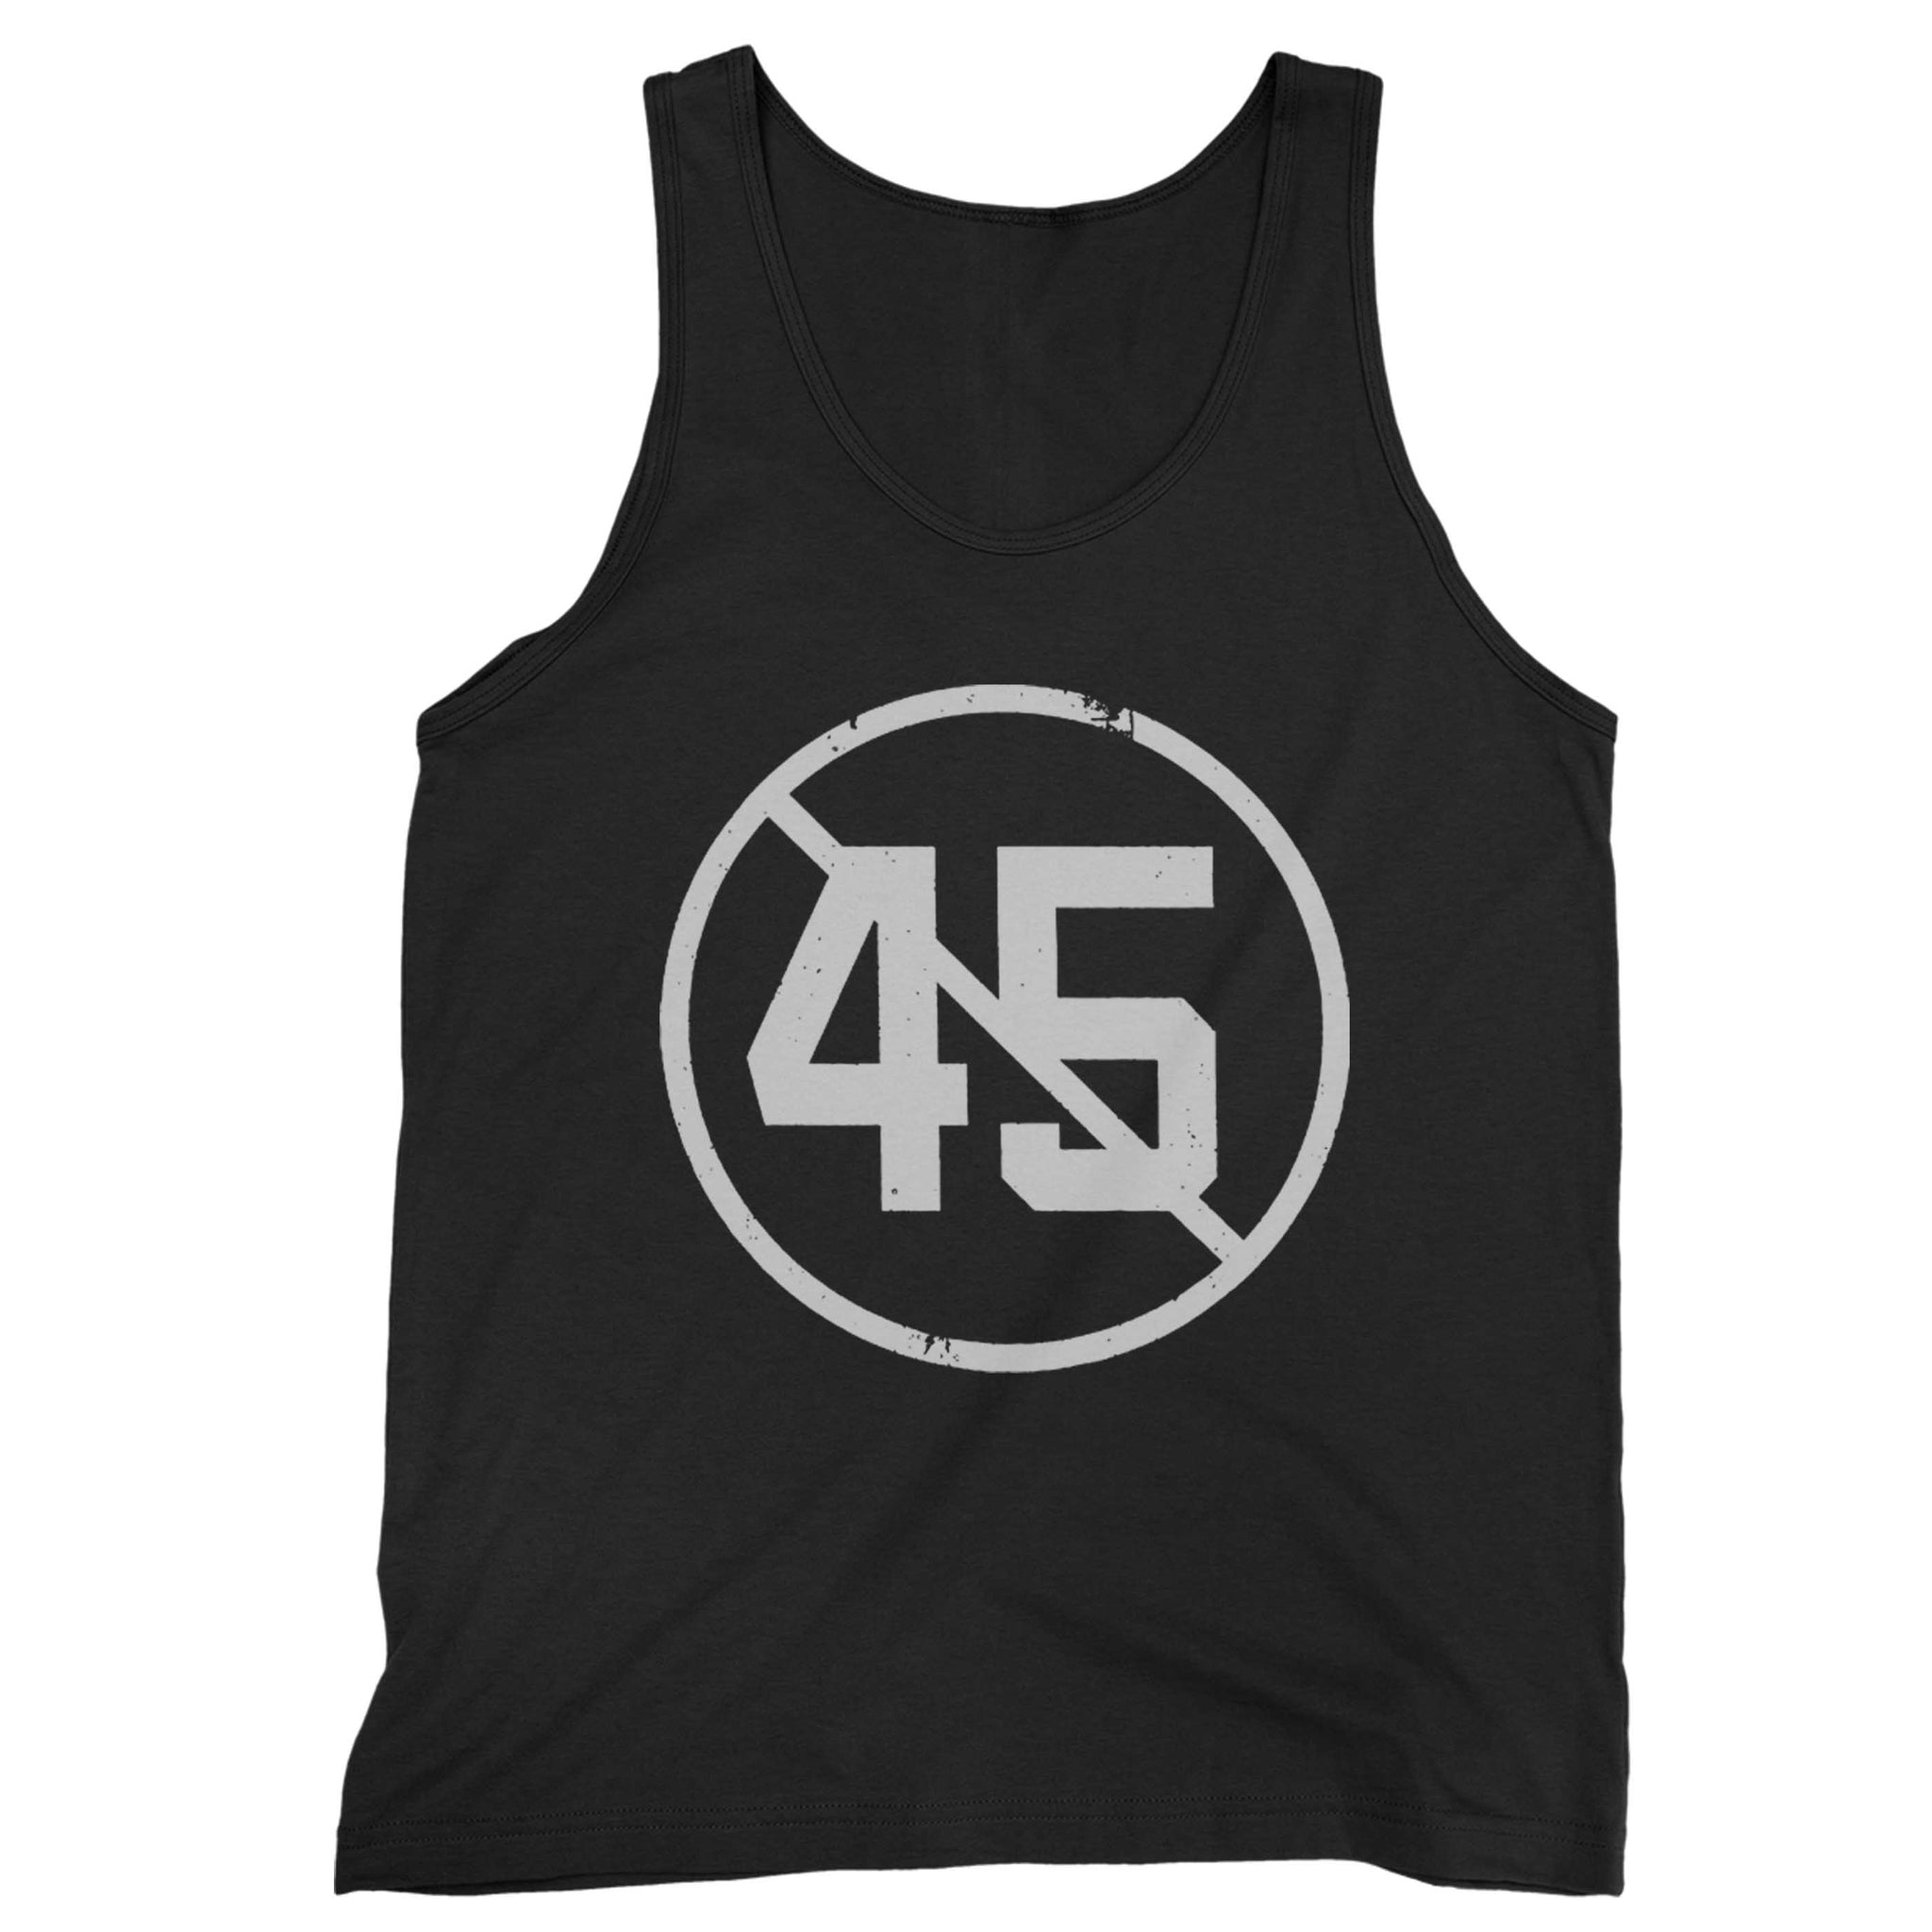 Say No To 45 Man's Tank Top